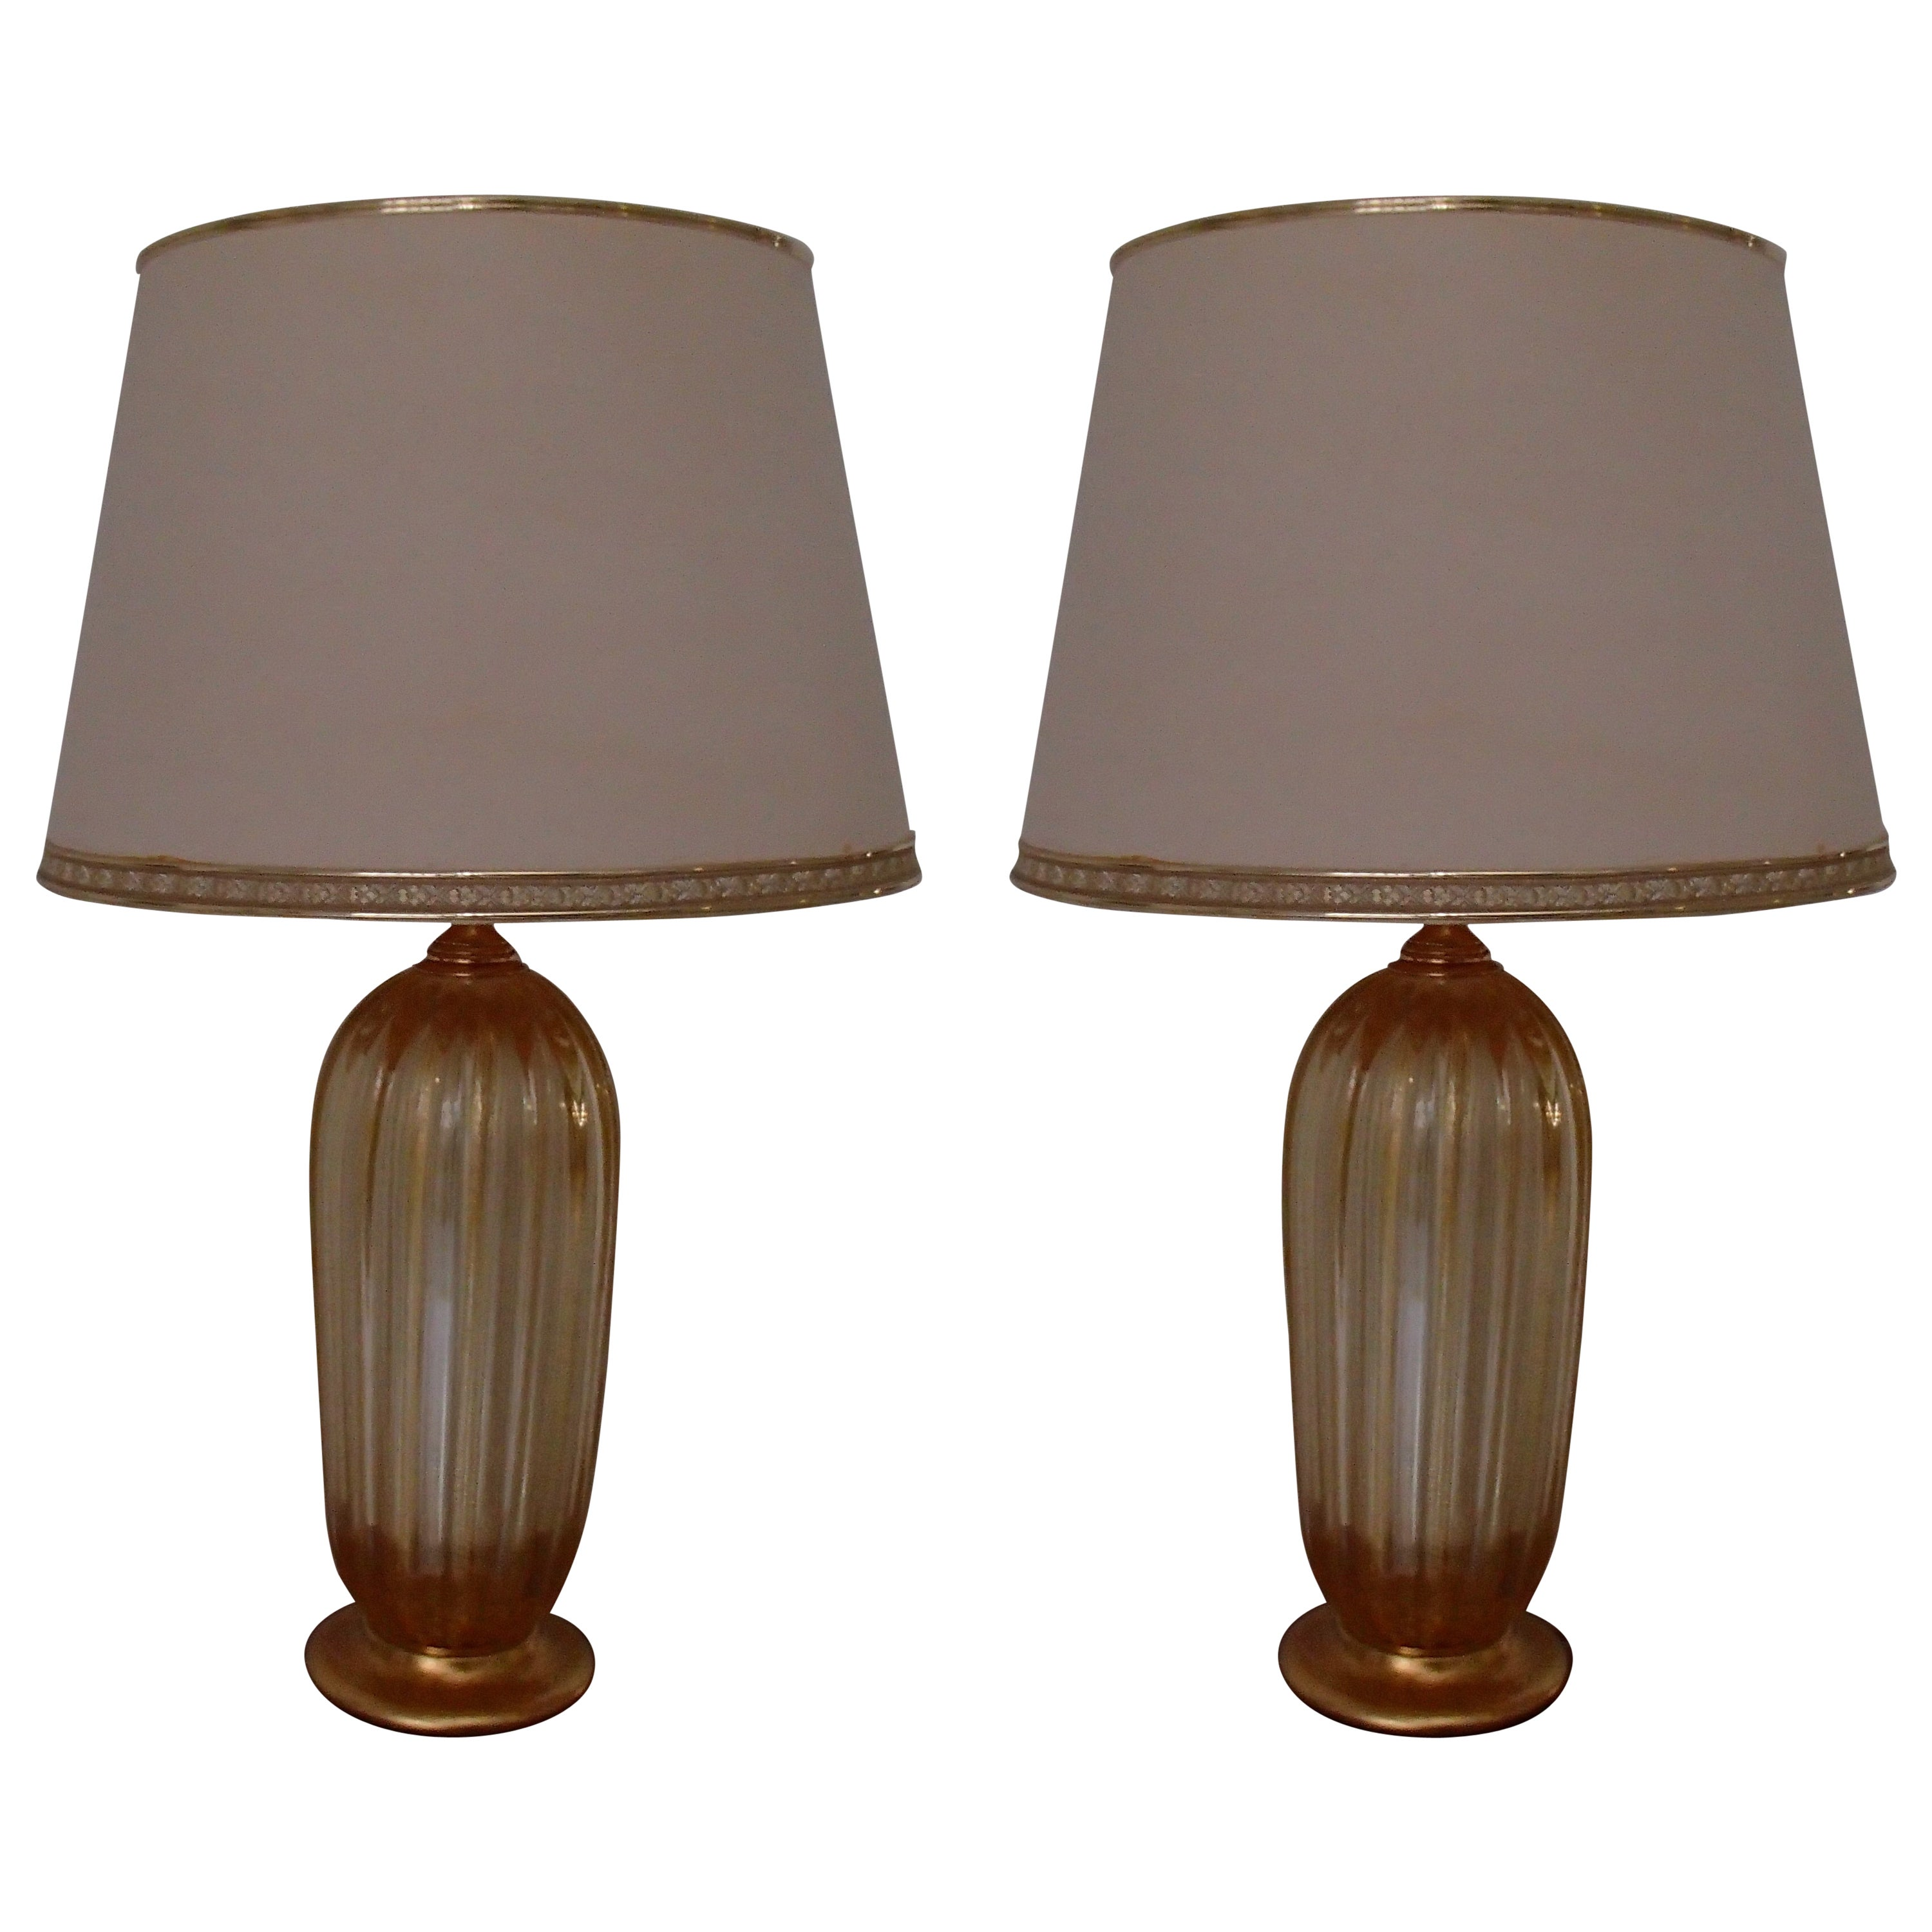 Pair of Tall Barovier e Toso Murano Table Lamps with Gold Inlays